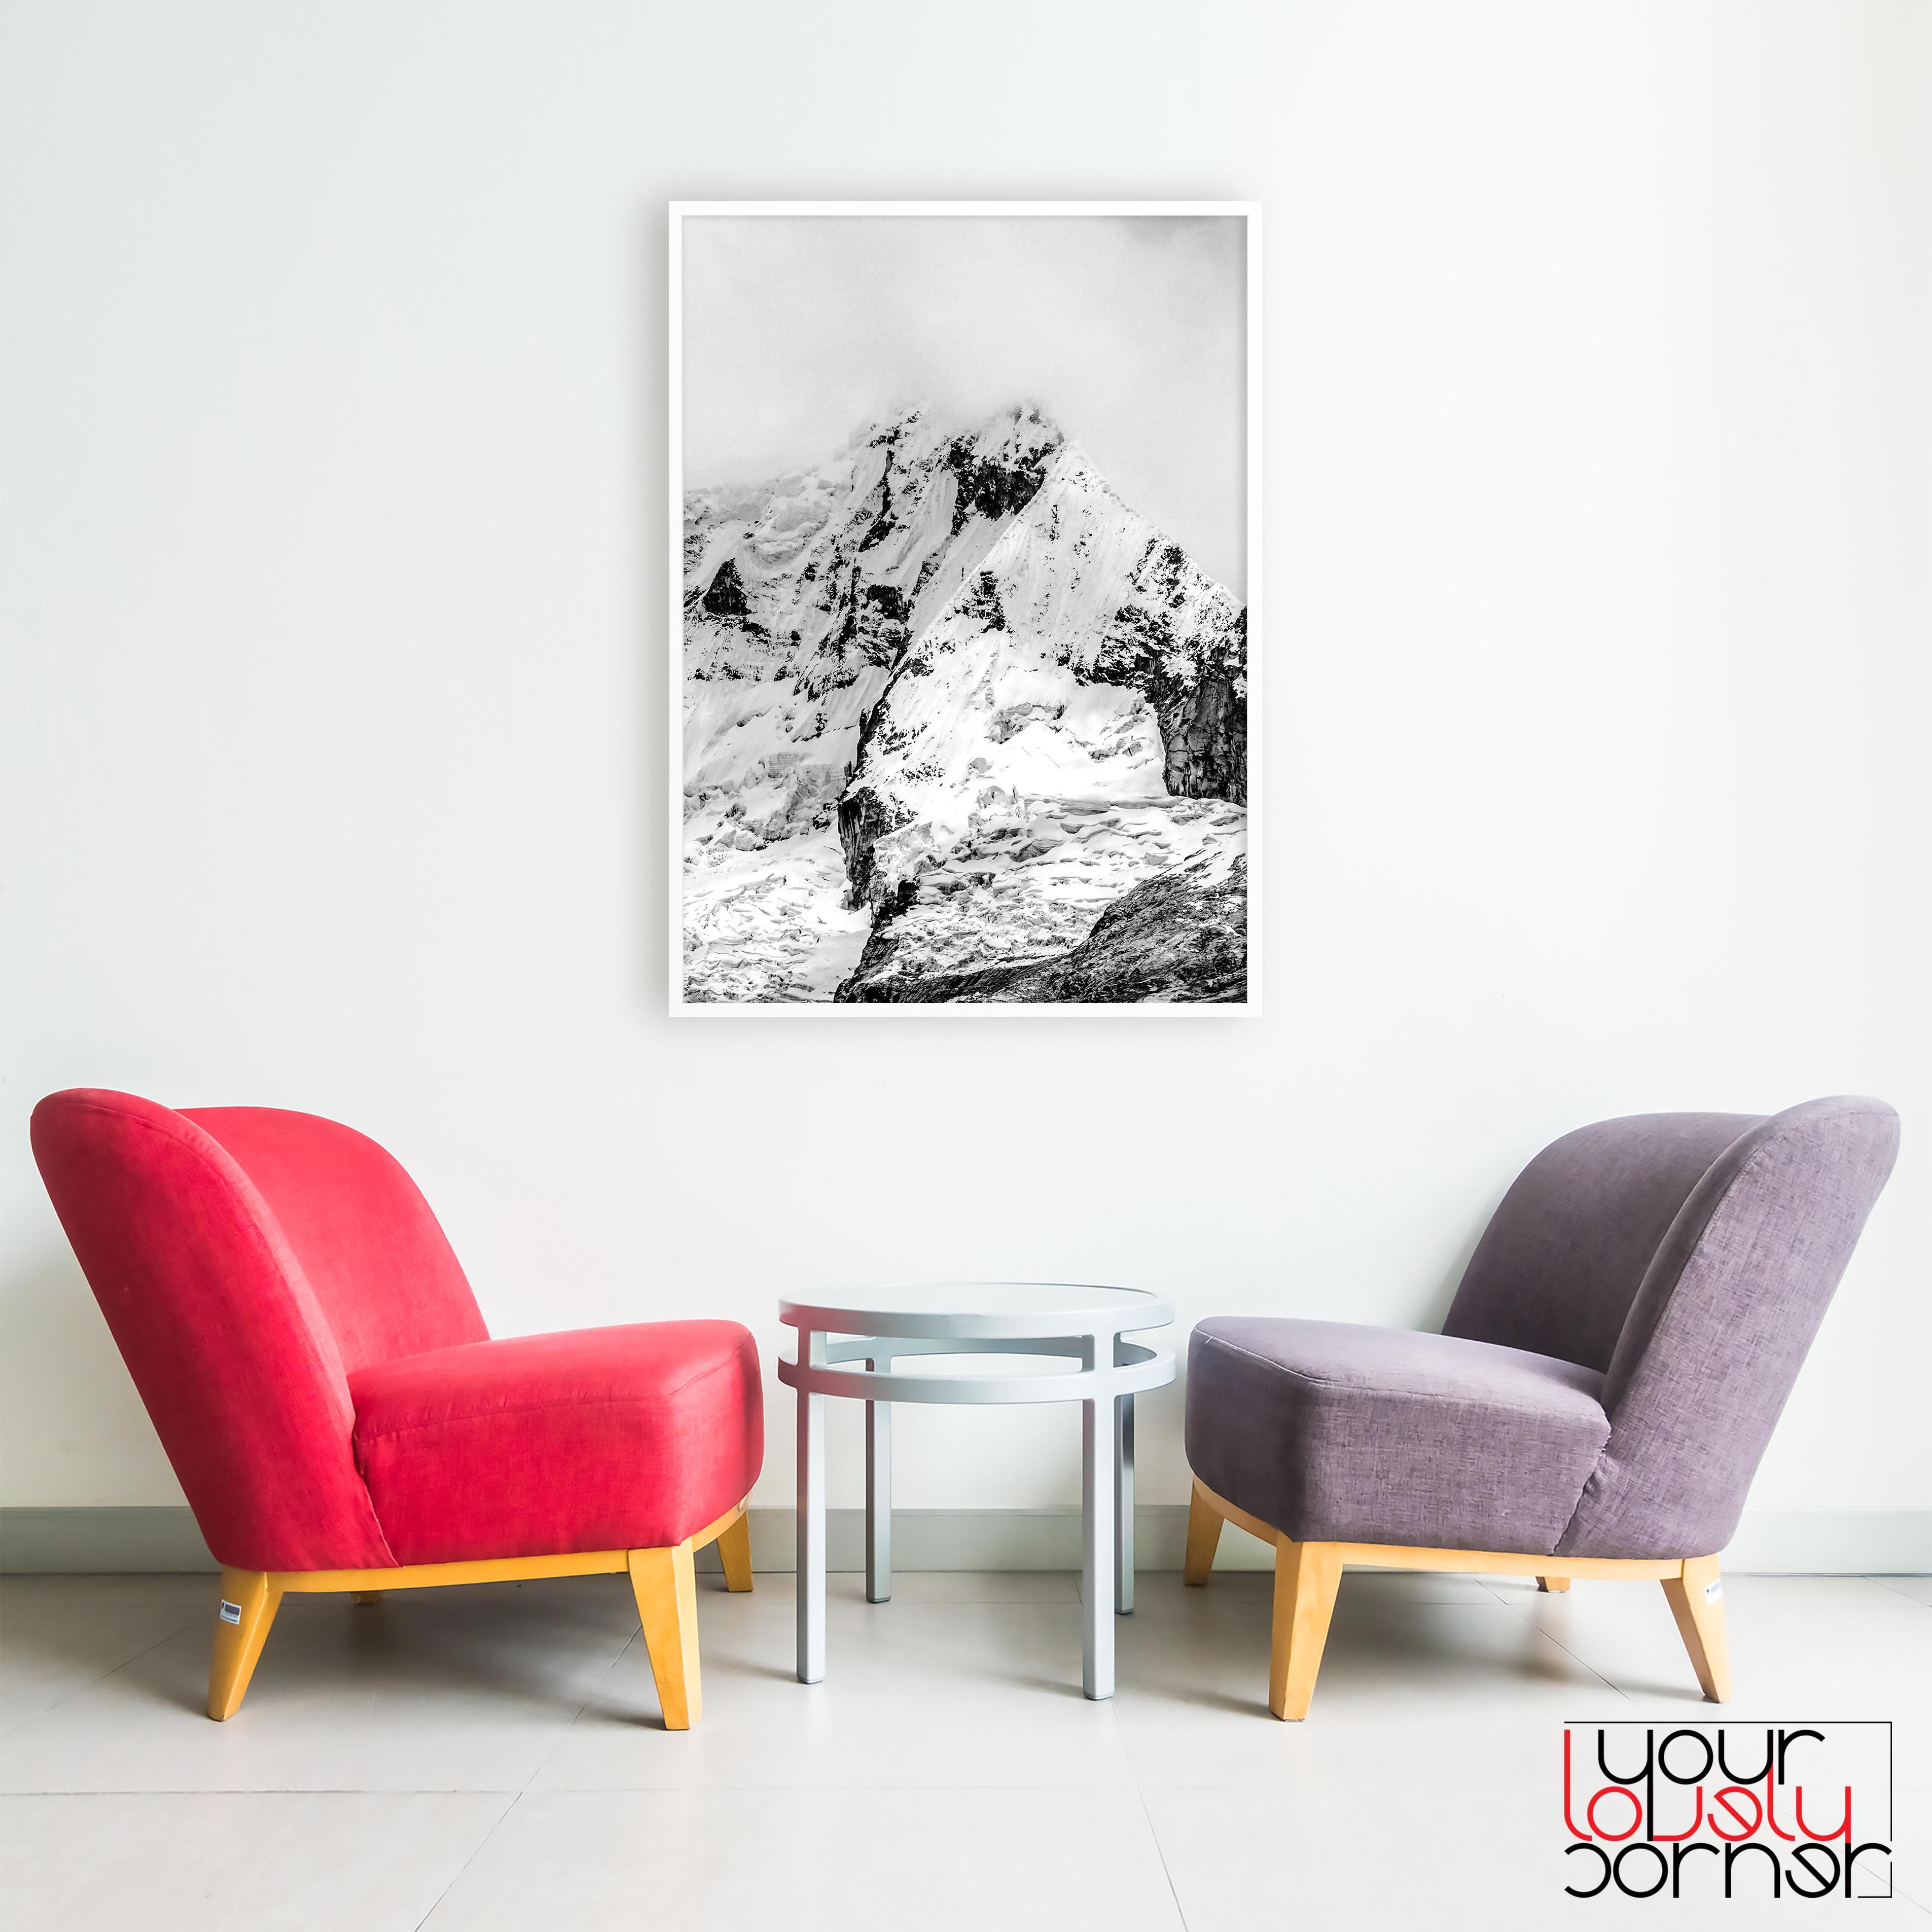 Art U0026 Collectibles, Prints, Digital Prints, Modern Interior Art, Modern  Decor, Minimalist Print, Nature Art Print, Black White Mountain, Rocky  Mountain ...